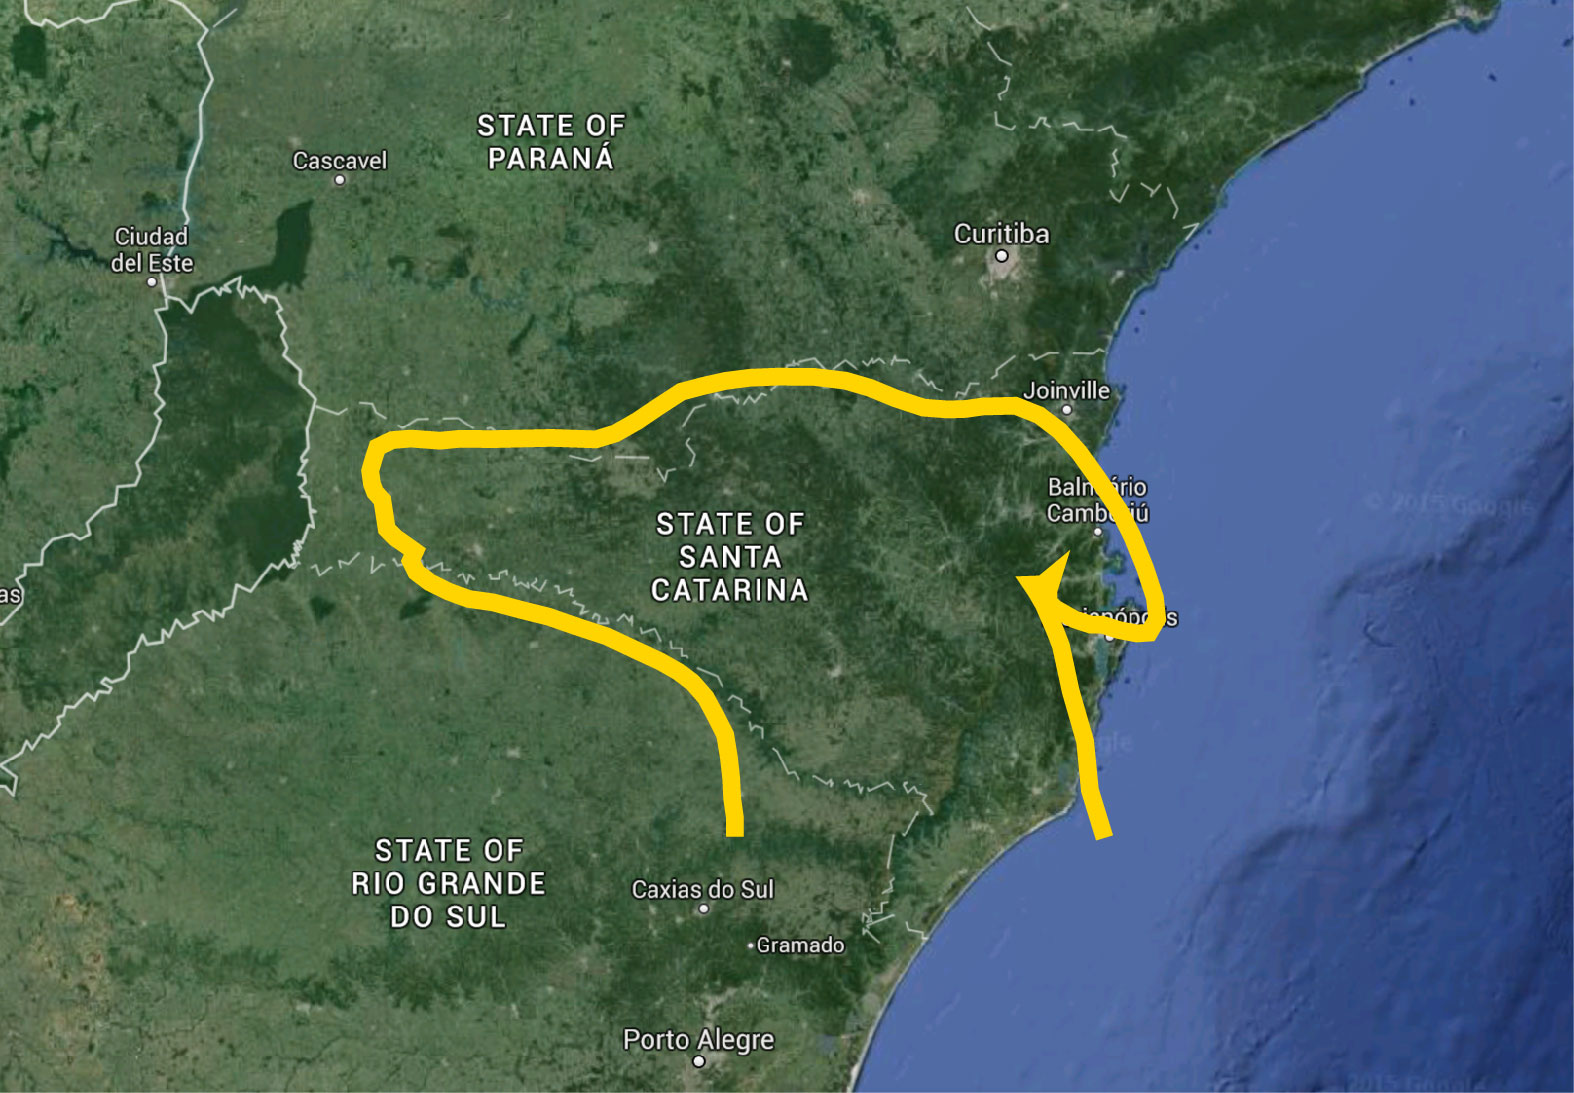 Google Earth map of Santa Catarina state with dog head overlay.